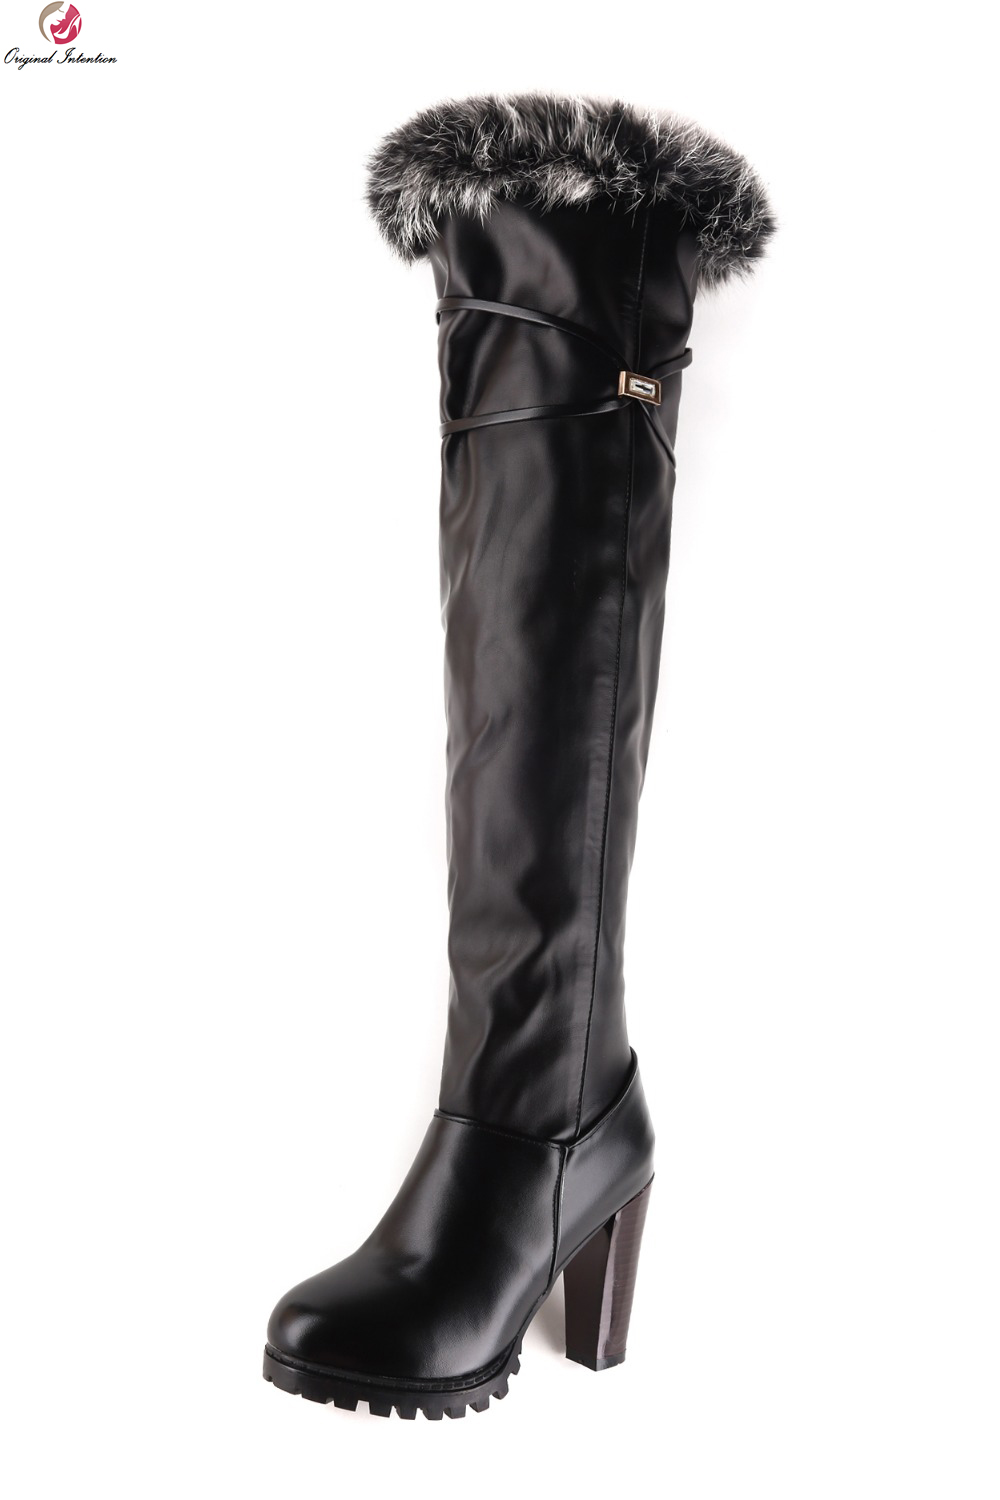 Original Intention Women Over the Knee Boots Fashion Round Toe Square Heels Winter Boots Black White Shoes Woman US Size 3.5-13 anmairon high heels lace charms shoes woman over the knee boots zippers round toe long boots size 34 39 black winter boots shoes